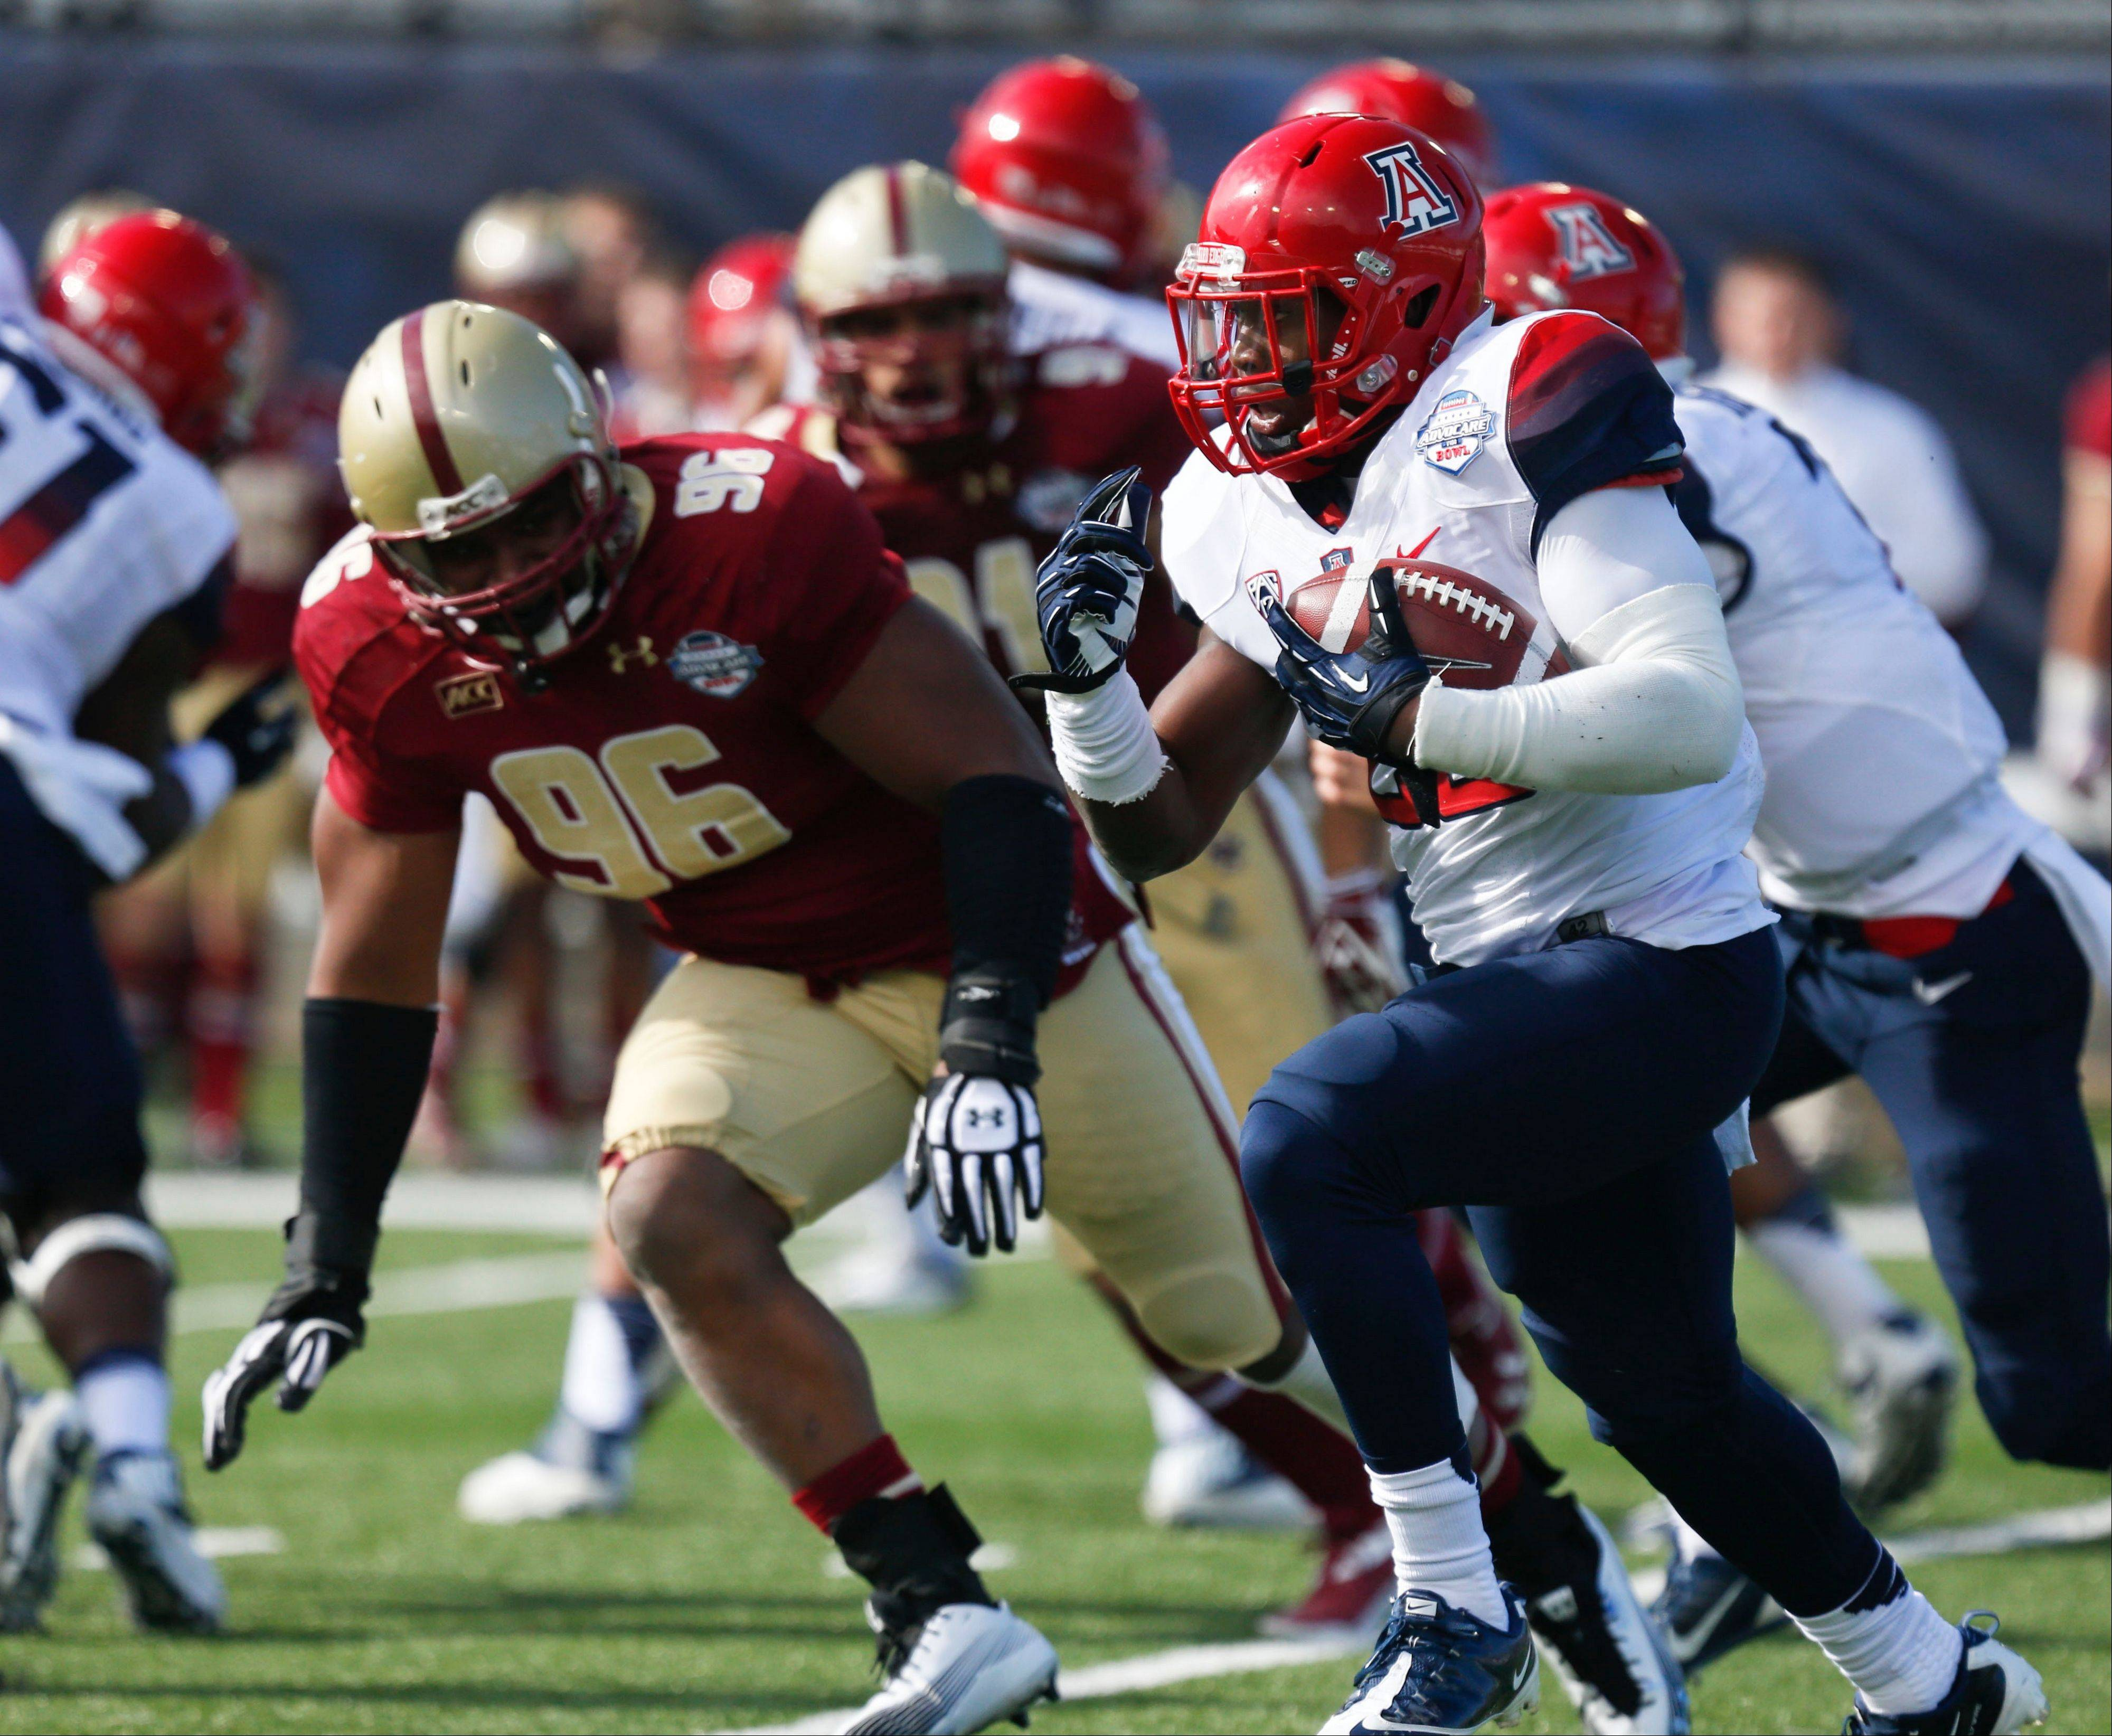 Arizona running back Ka'Deem Carey rushes upfield as Boston College defensive lineman Kaleb Ramsey pursues during the first half of the AdvoCare V100 Bowl on Tuesday at Independence Stadium in Shreveport, La.